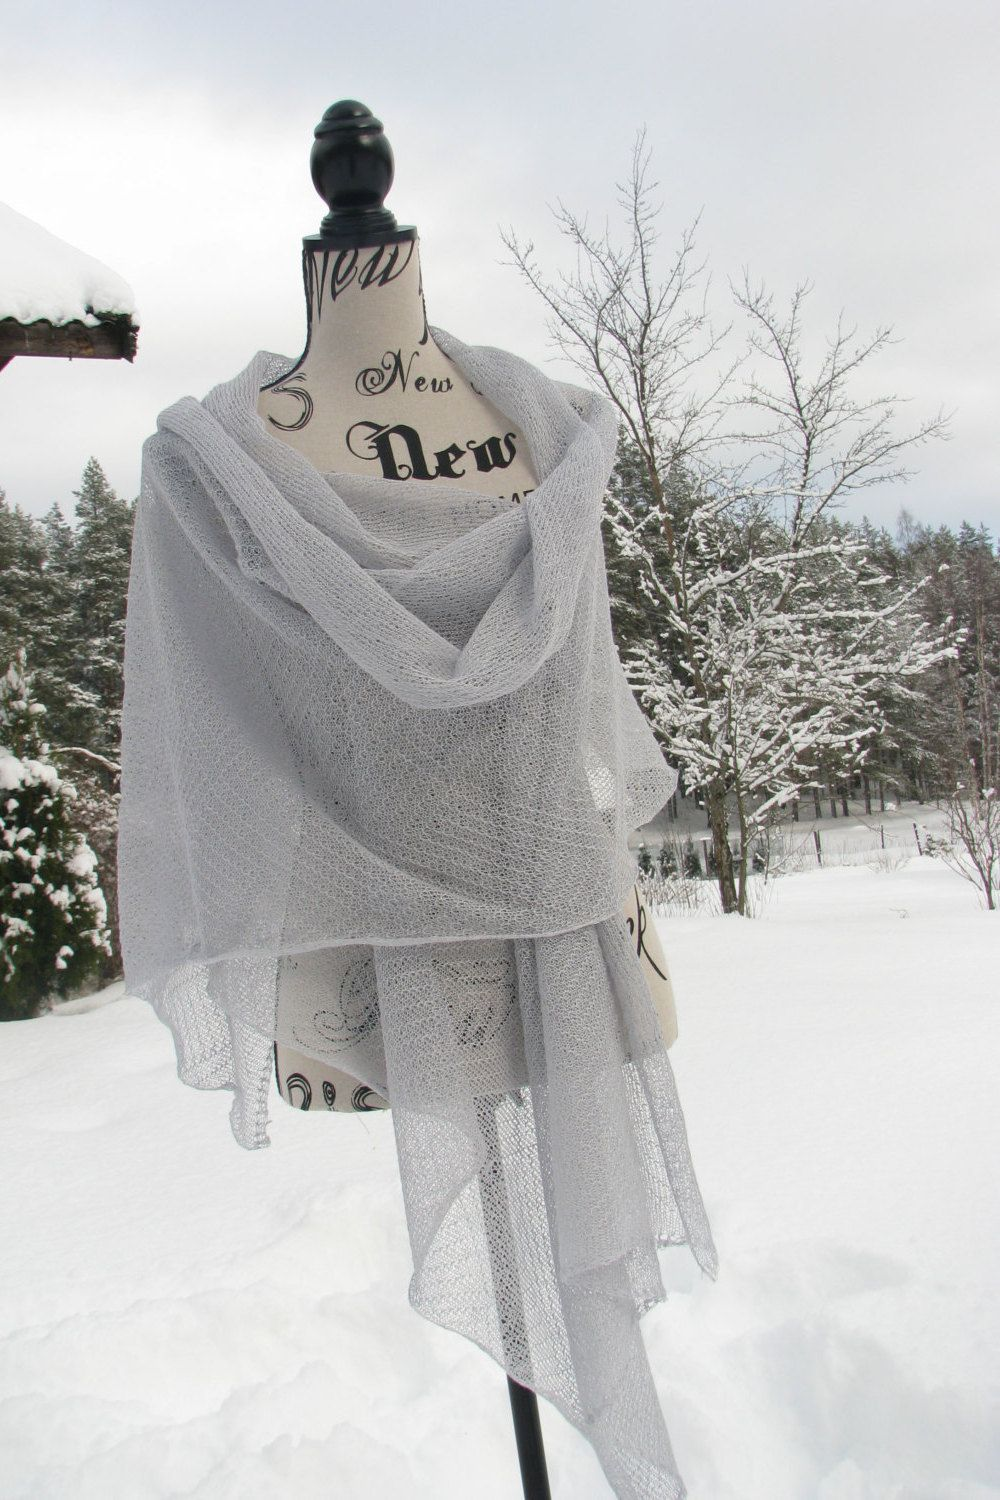 Handmade Shawls Linen Flax Eco friendly Scarf Fancy Wrap Gift for Her from 100% natural linen Air schal Summer openwork Scarf Shawl Beach by PonchoShawlScarves on Etsy